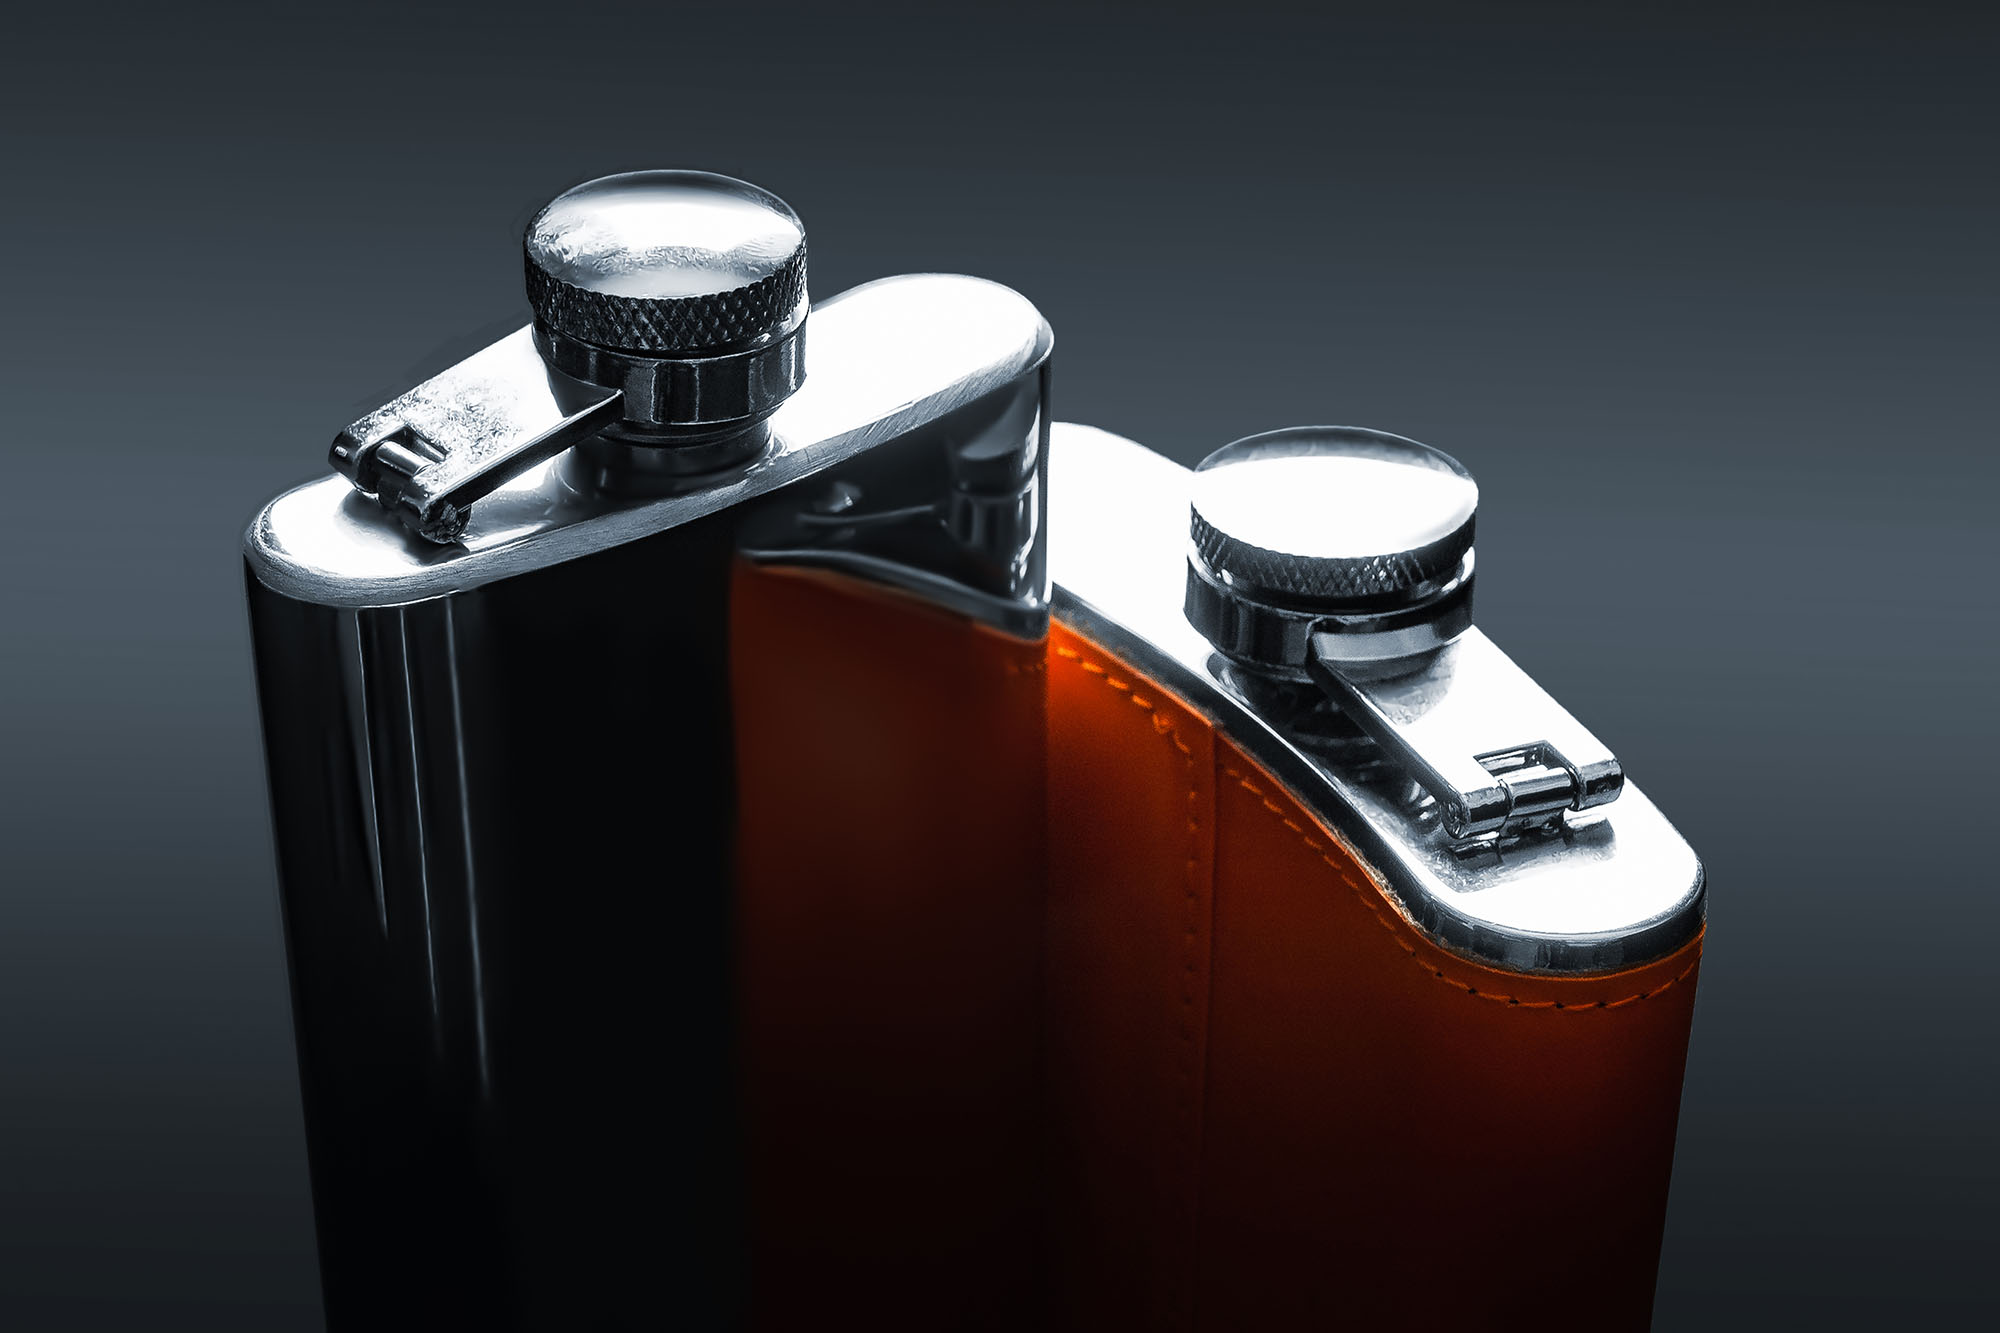 Two flask for alcohol. Top view of steel flasks with leather trim on a black background. Tanks for whiskey, rum, vodka and various alcohol. Lifestyle and travel.